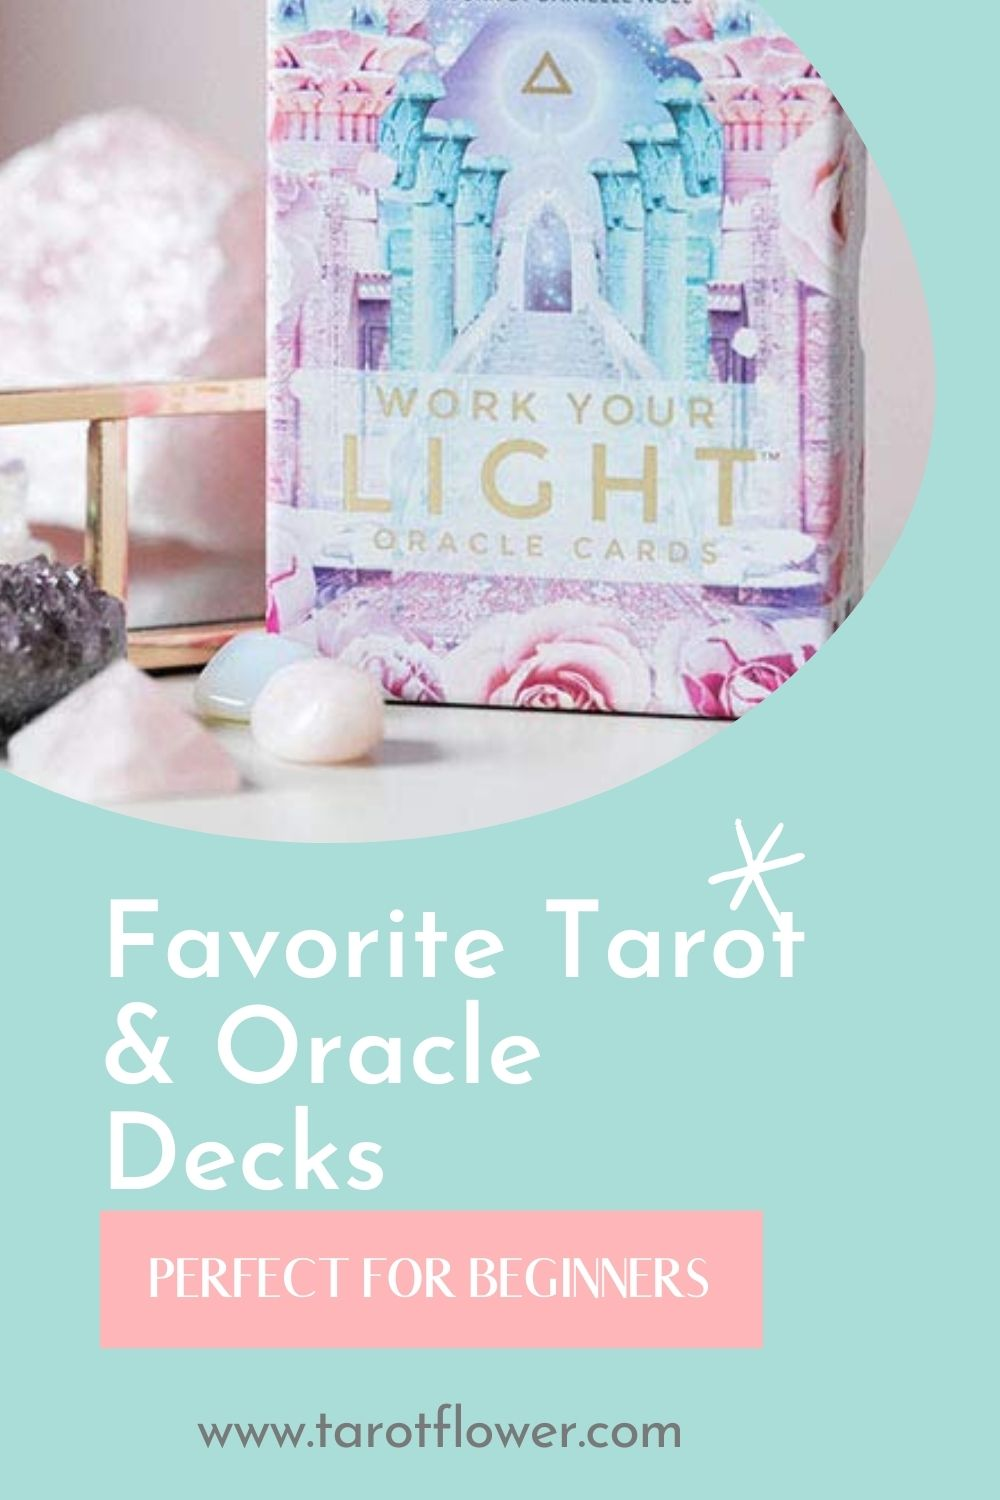 tarot cards, oracle cards